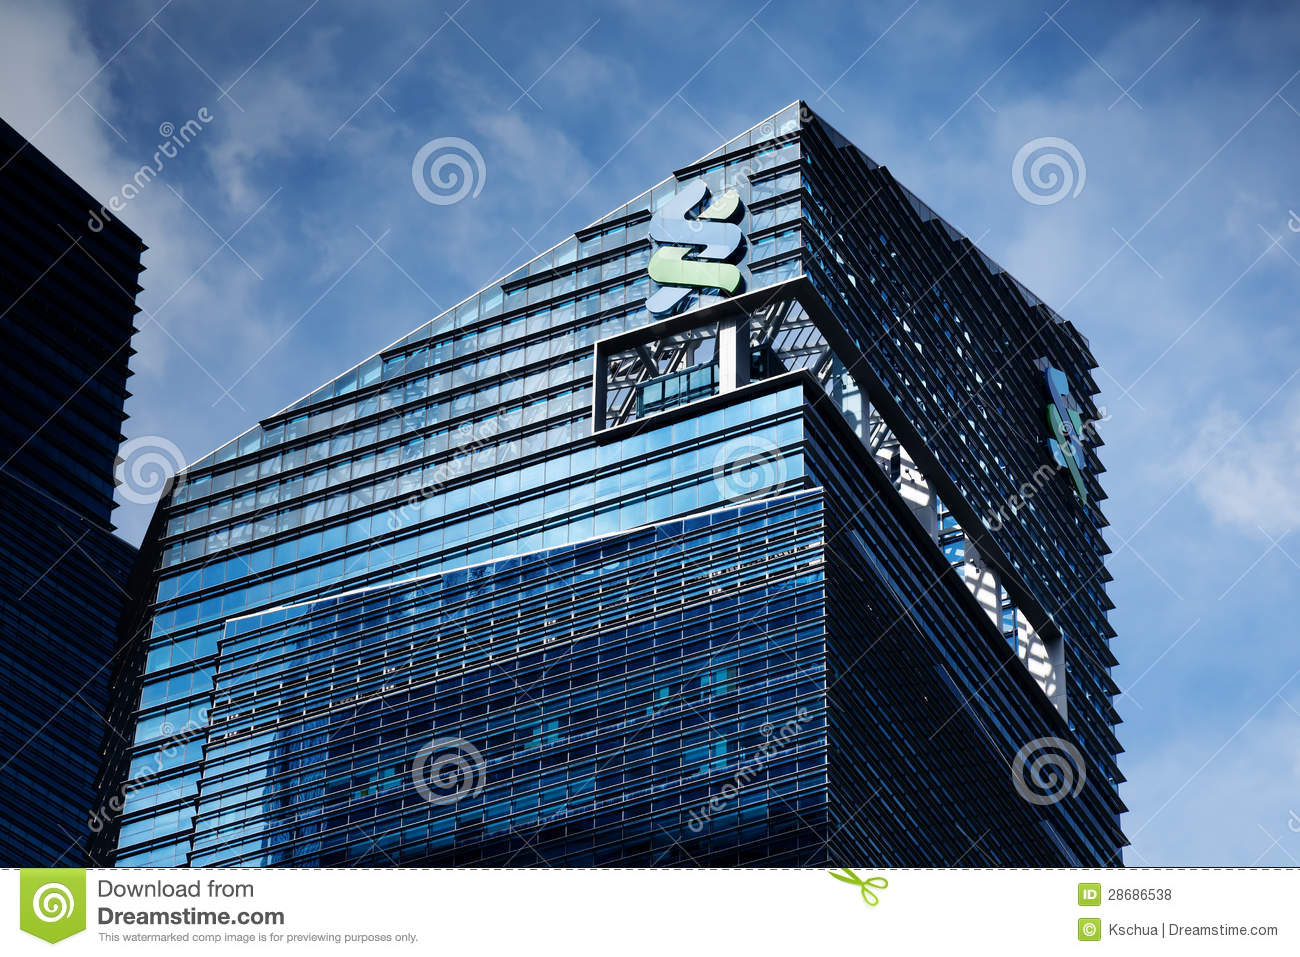 Standard Chartered Bank Building Editorial Stock Photo - Image of banking, architecture: 28686538